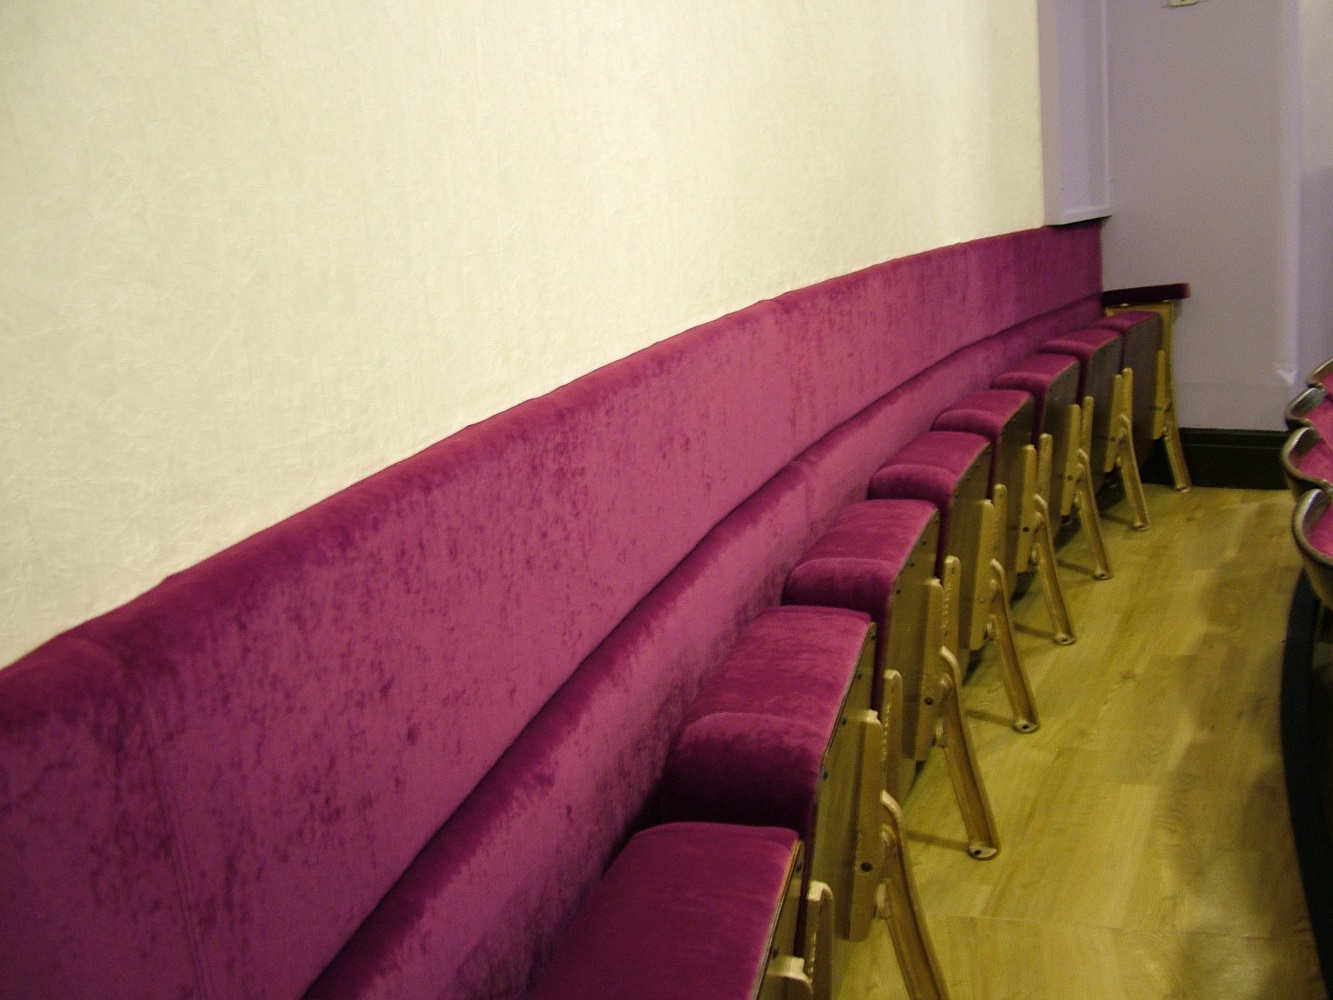 Back row of theatre seating with padded back wall panel upholstered in deep red velvet